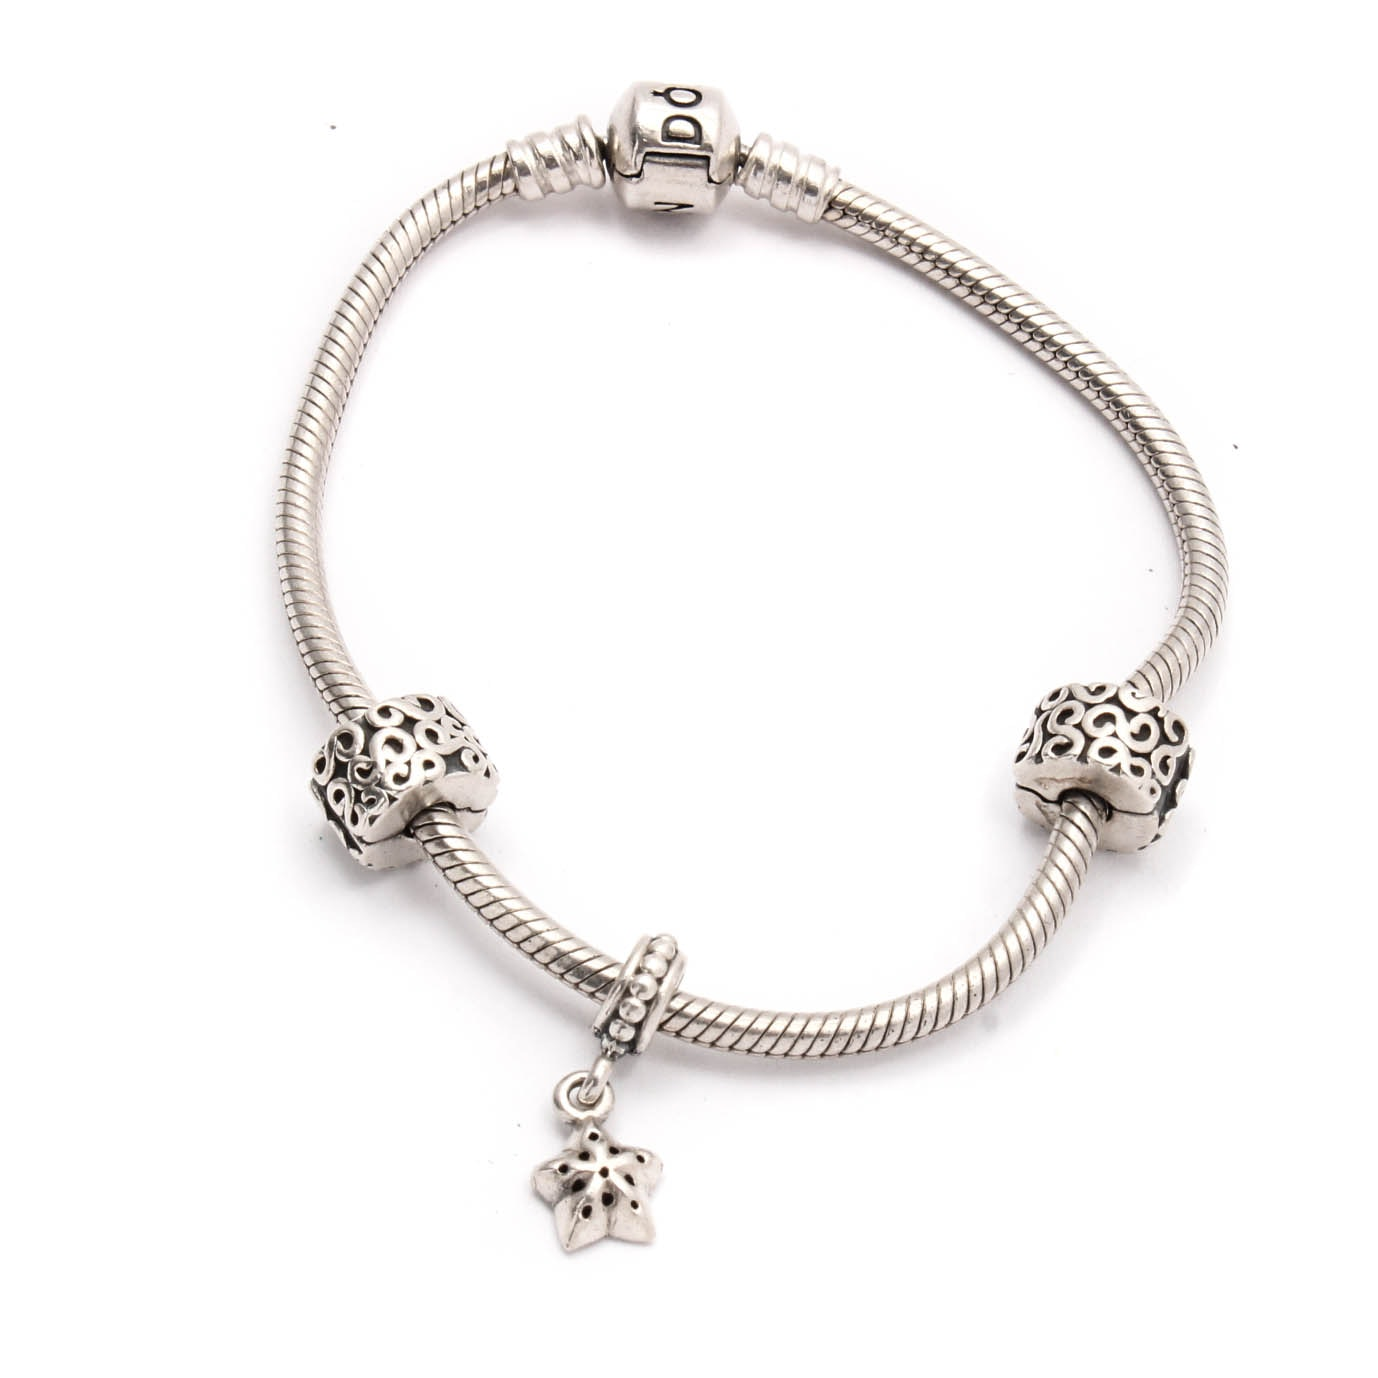 Pandora Sterling Silver Bracelet with Charms